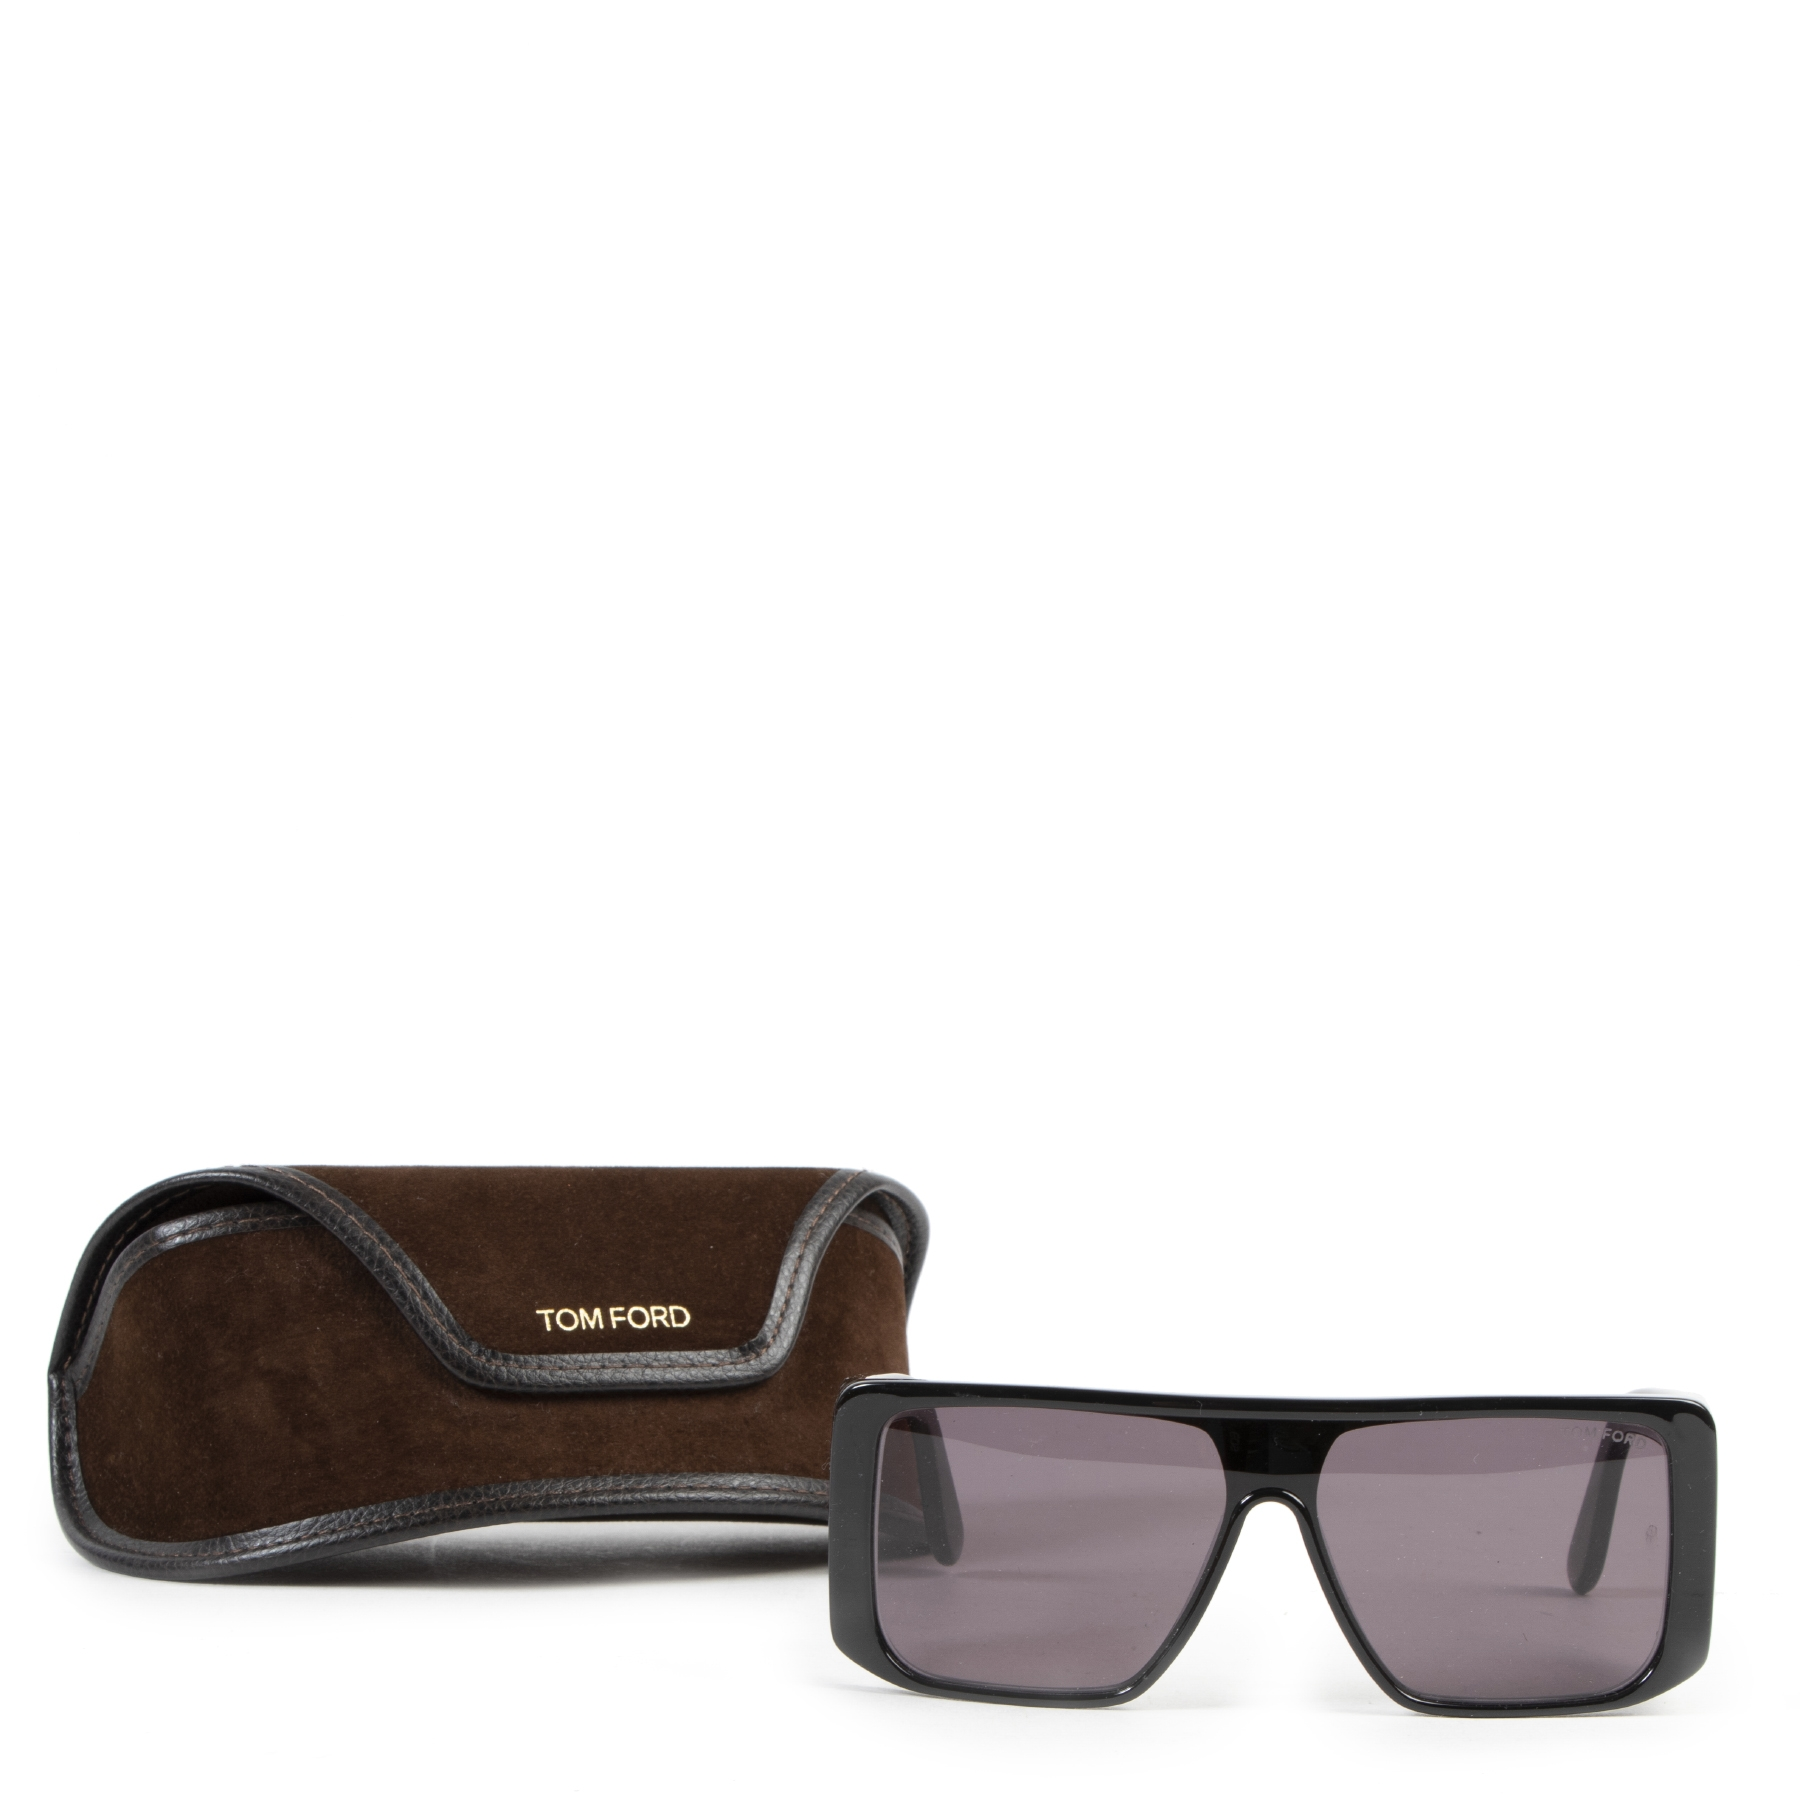 Tom Ford Black Atticus Sunglasses